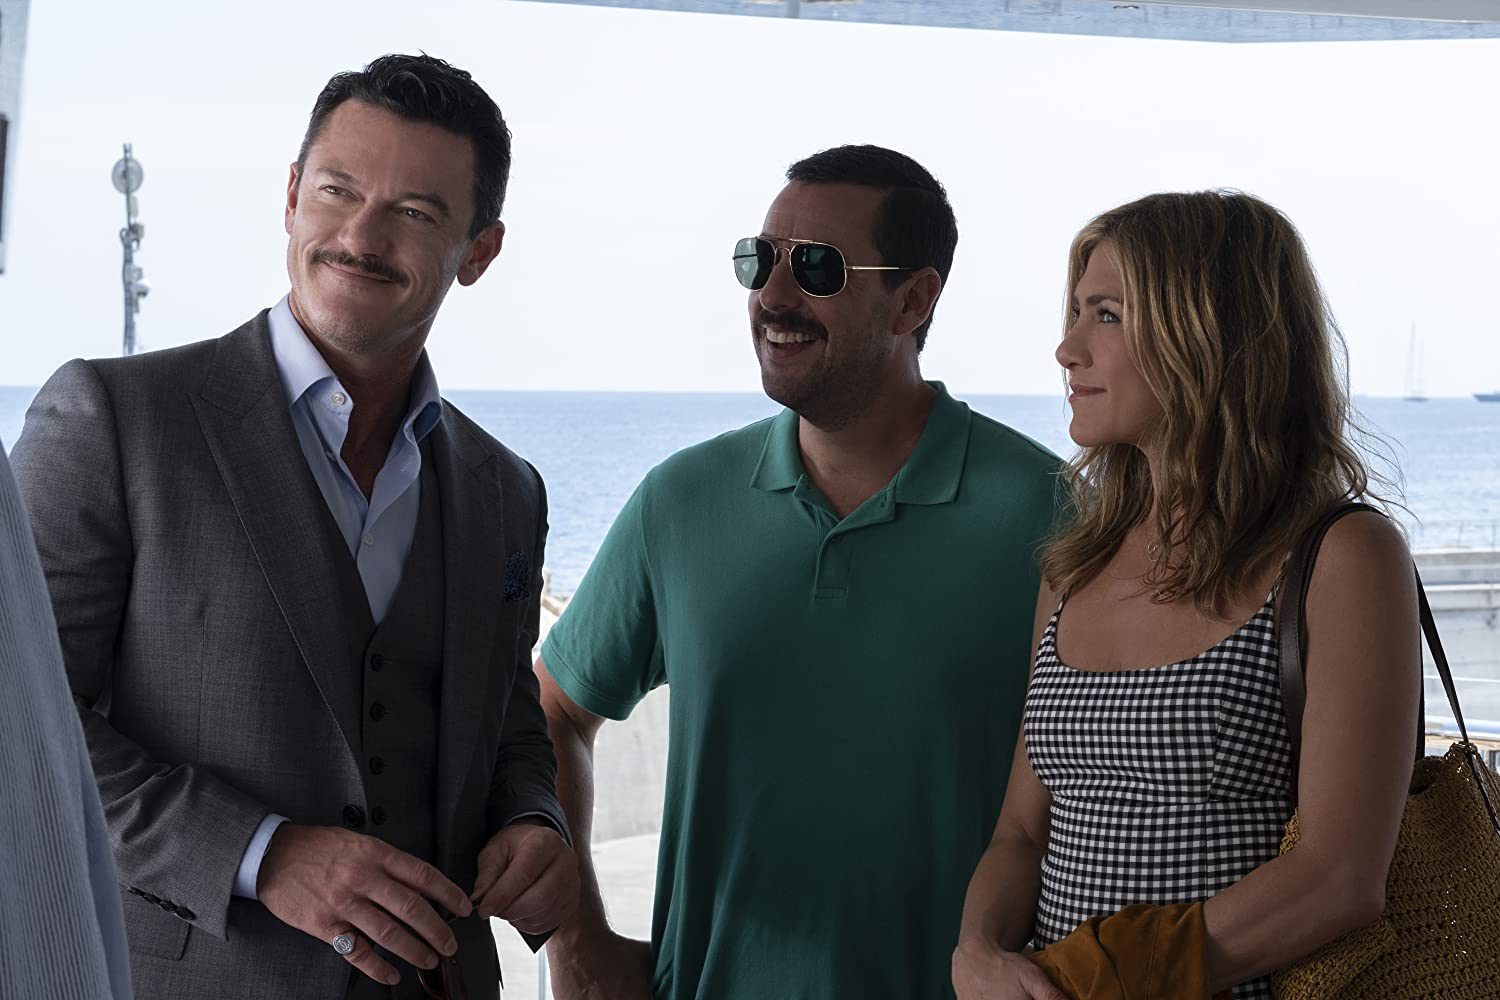 Jennifer Aniston, Adam Sandler, and Luke Evans in Murder Mystery (2019)